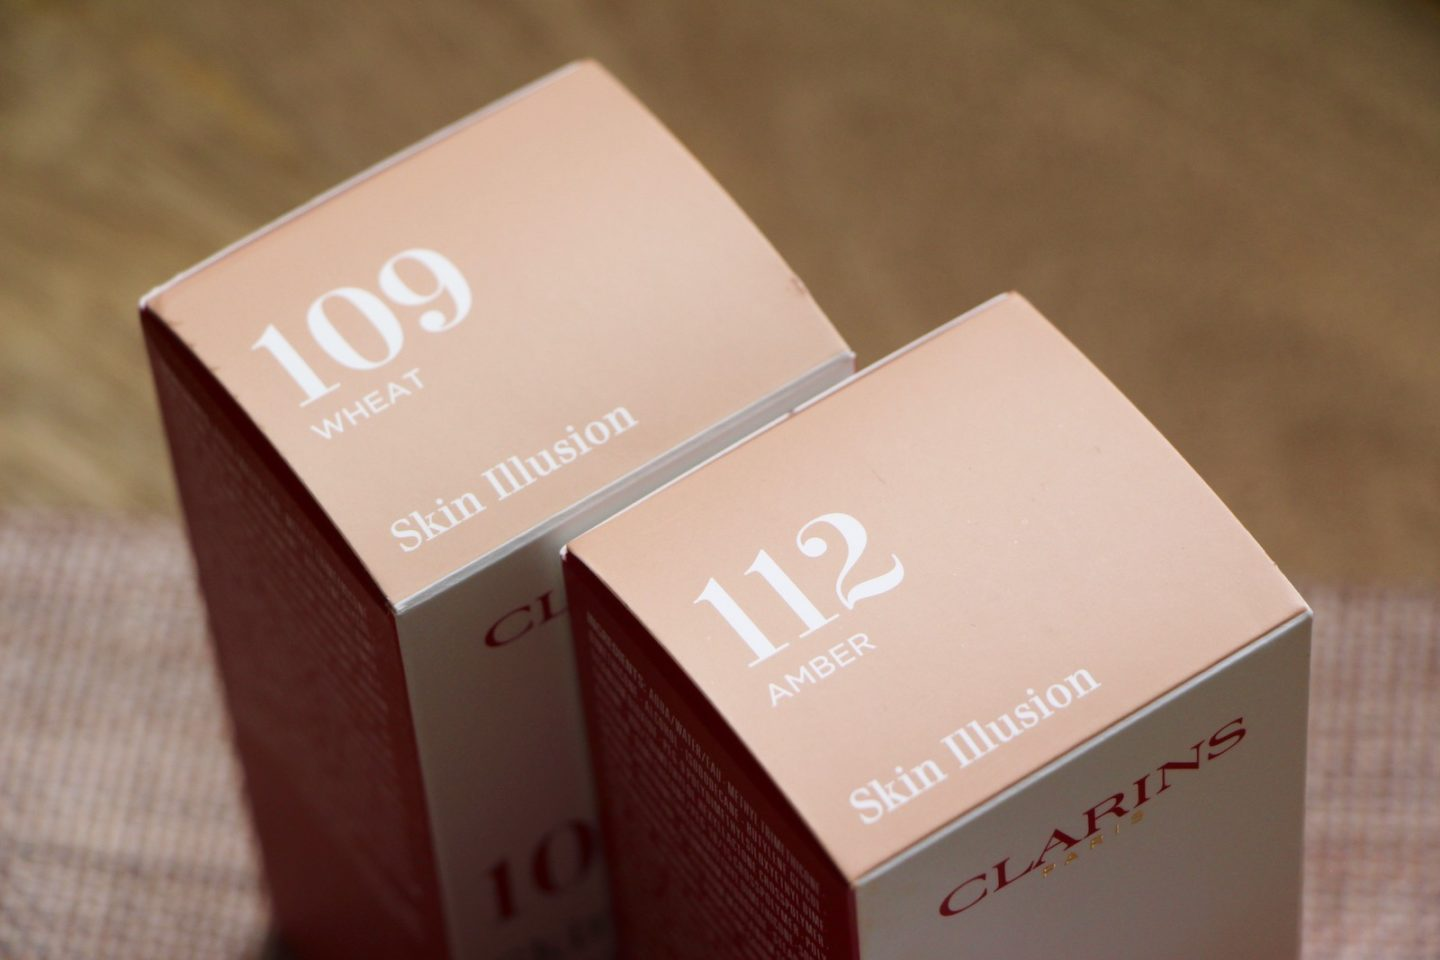 Clarins Skin Illusion foundation review